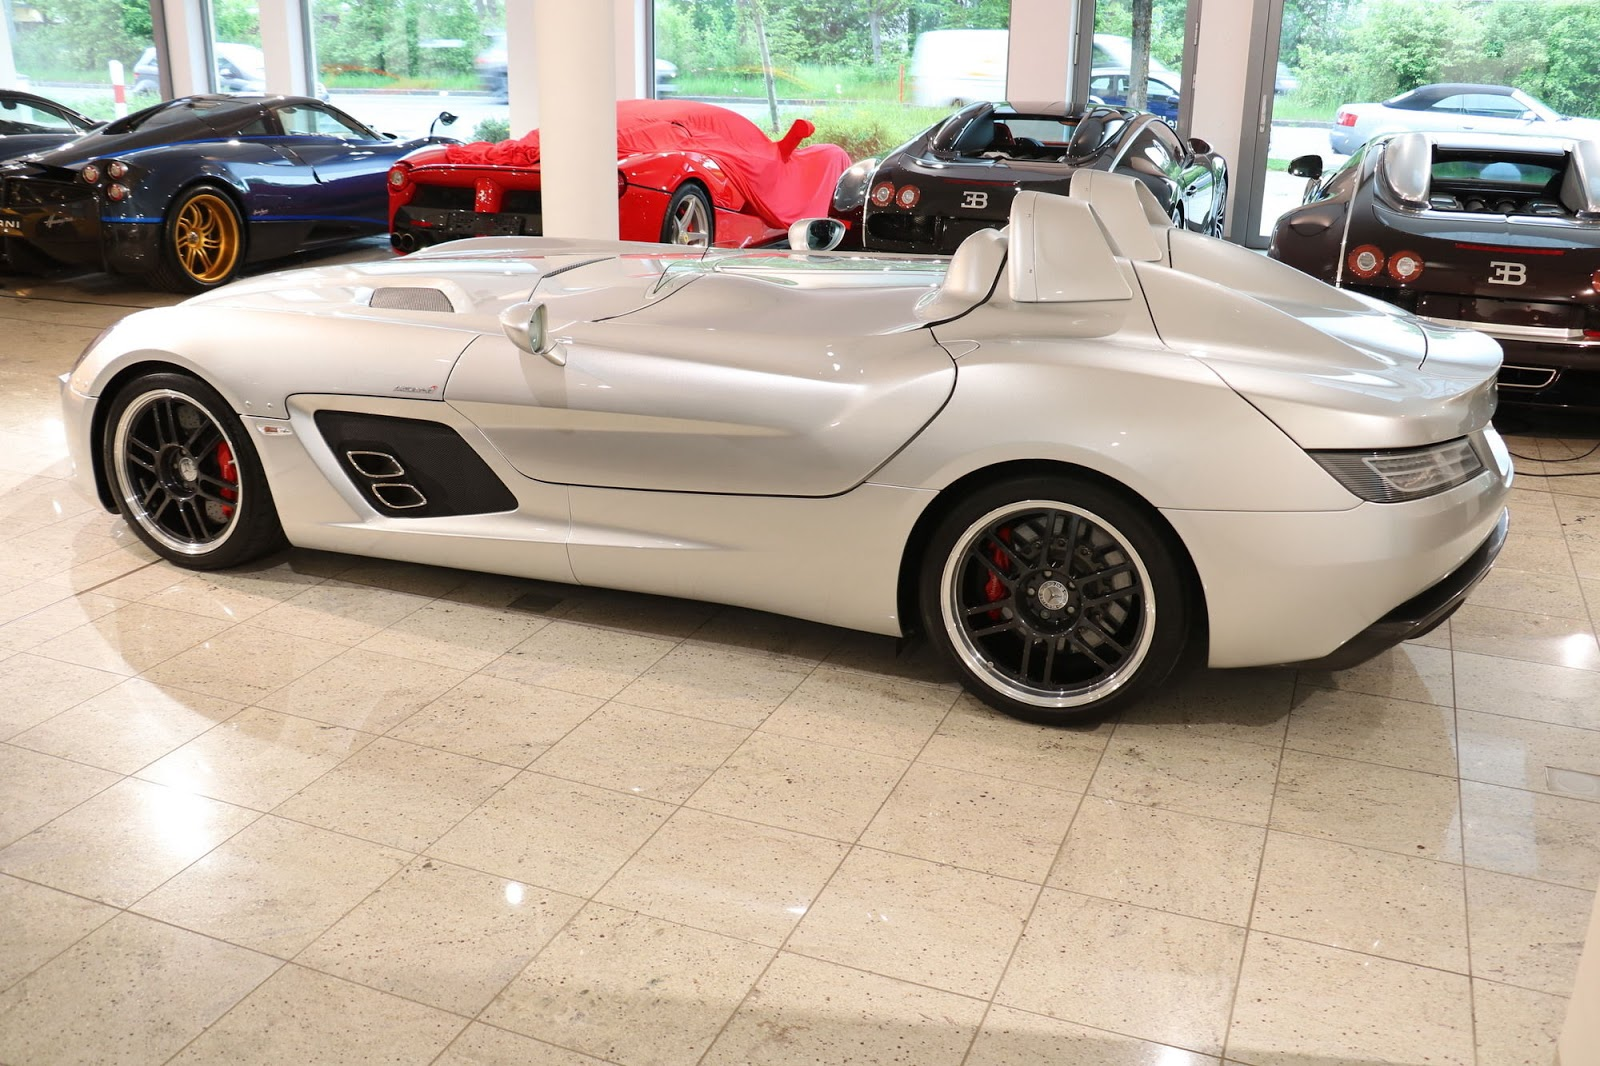 Mercedes-Benz SLR Stirling Moss for sale (5)